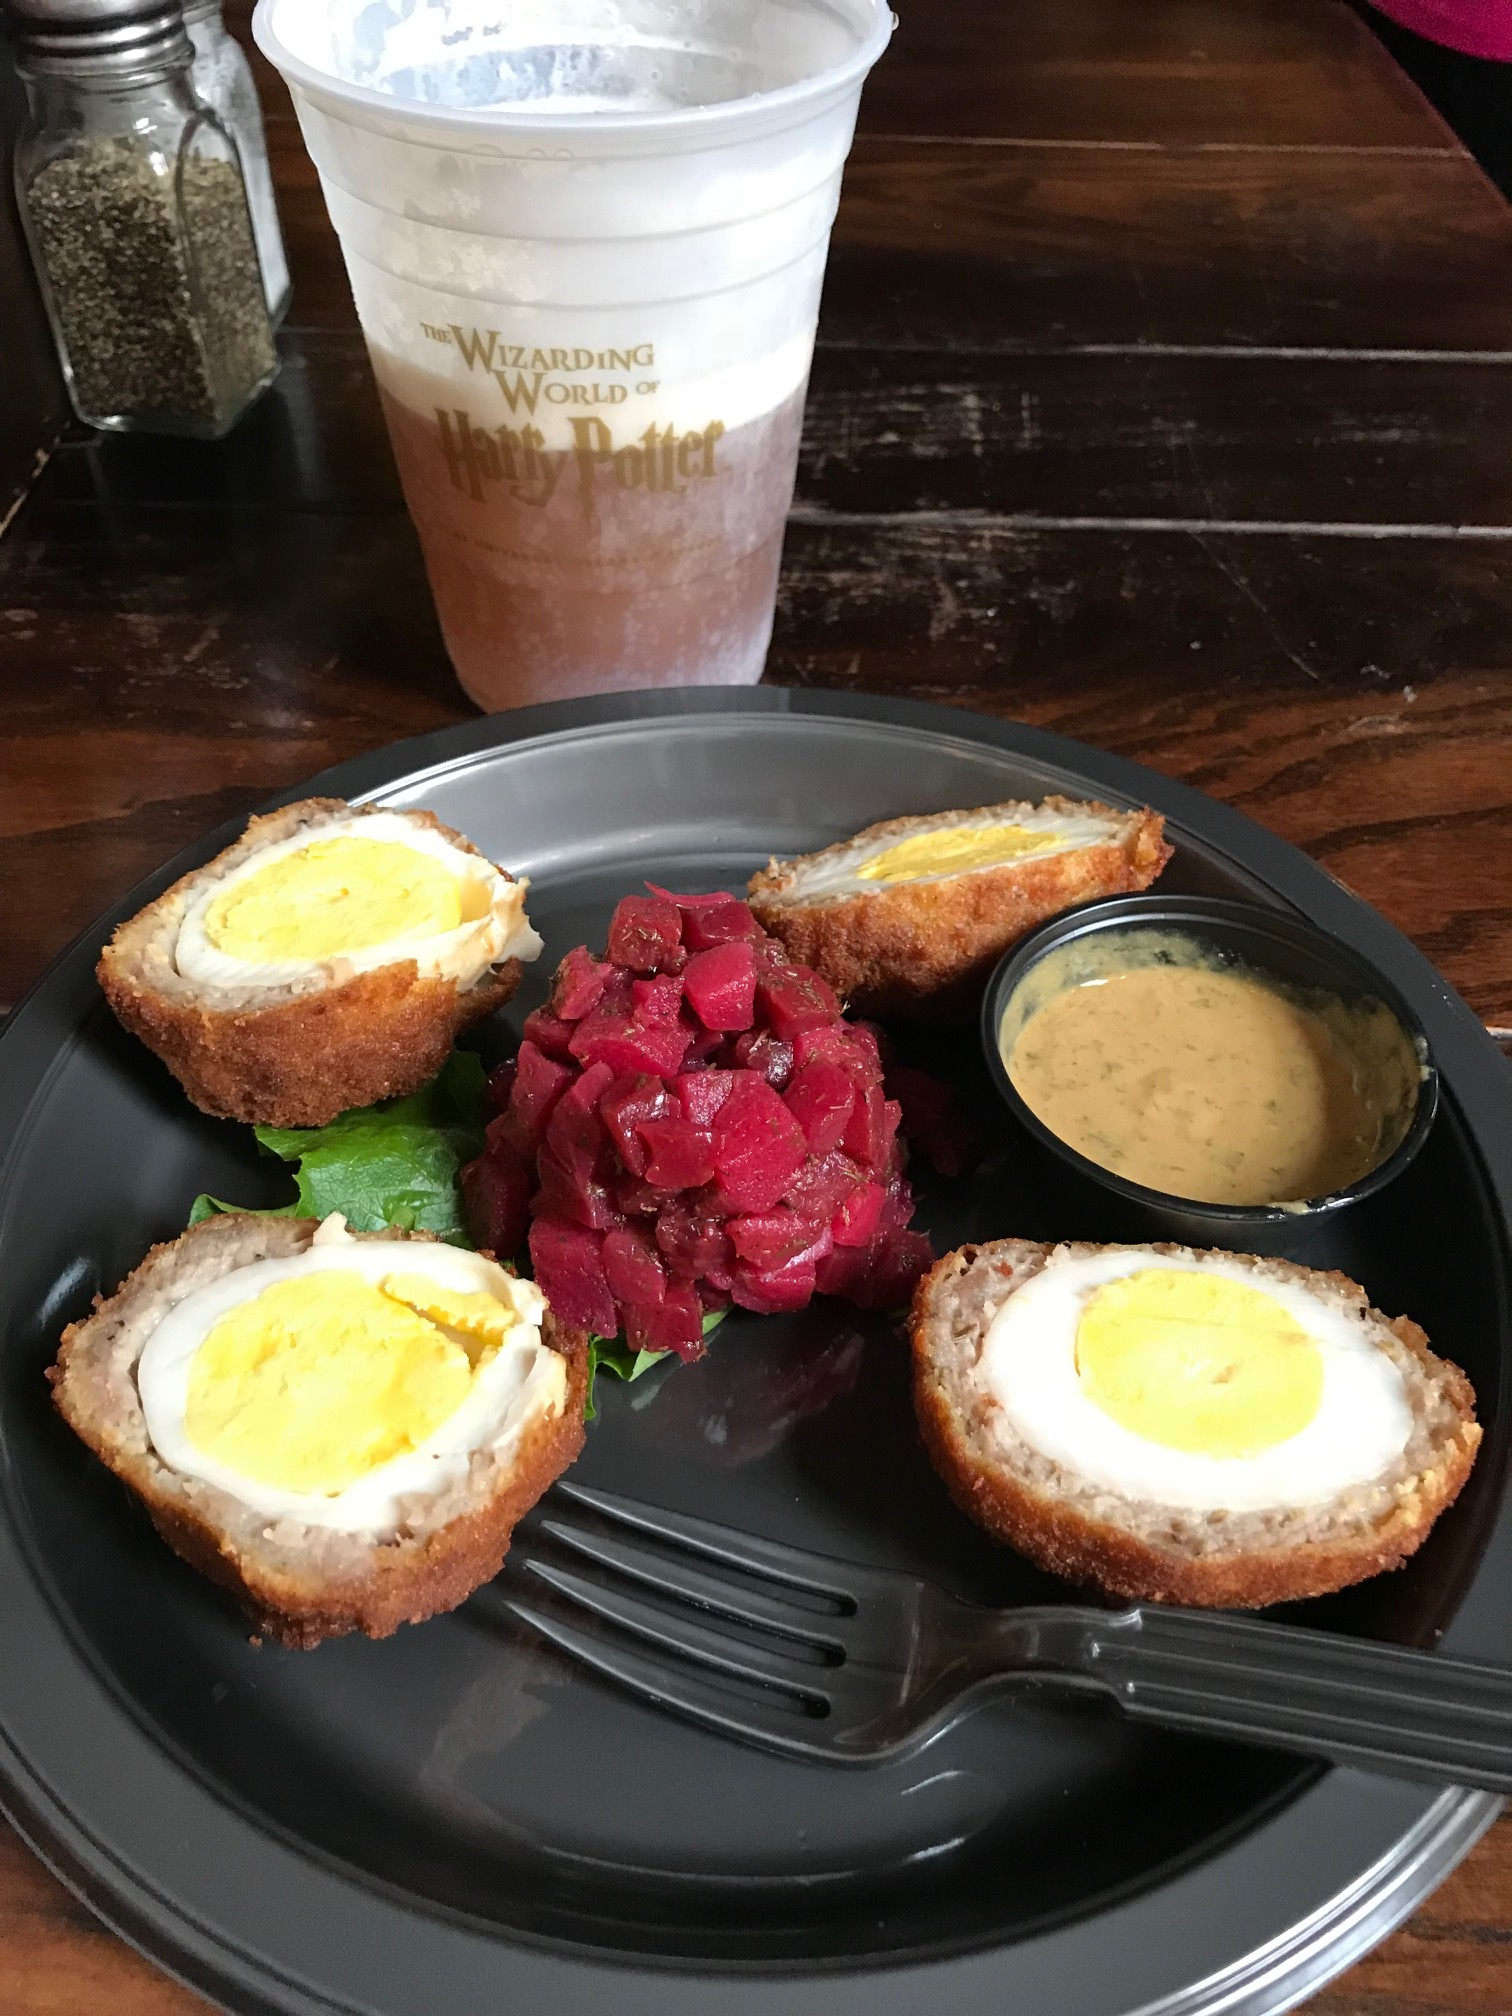 Scotch Eggs - With apple beet salad and ButterBeer